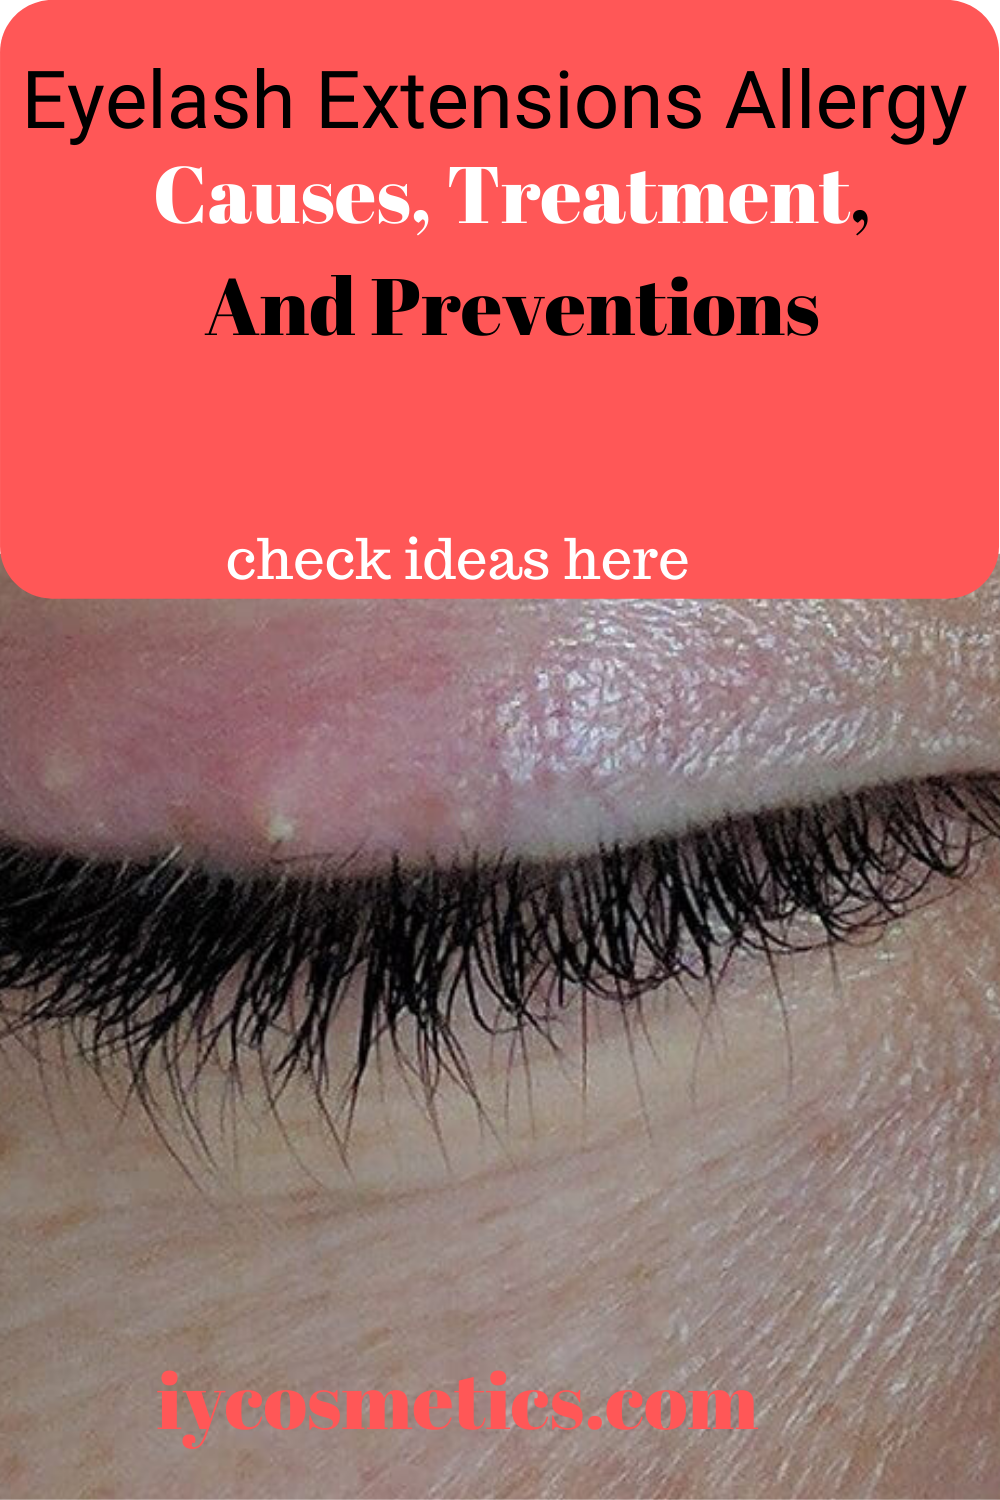 Eyelash Extensions Allergic Reactions Causes Symptoms Treatments And Preventions In 2020 Eyelash Extensions Allergic Reaction Treatment Eyelashes